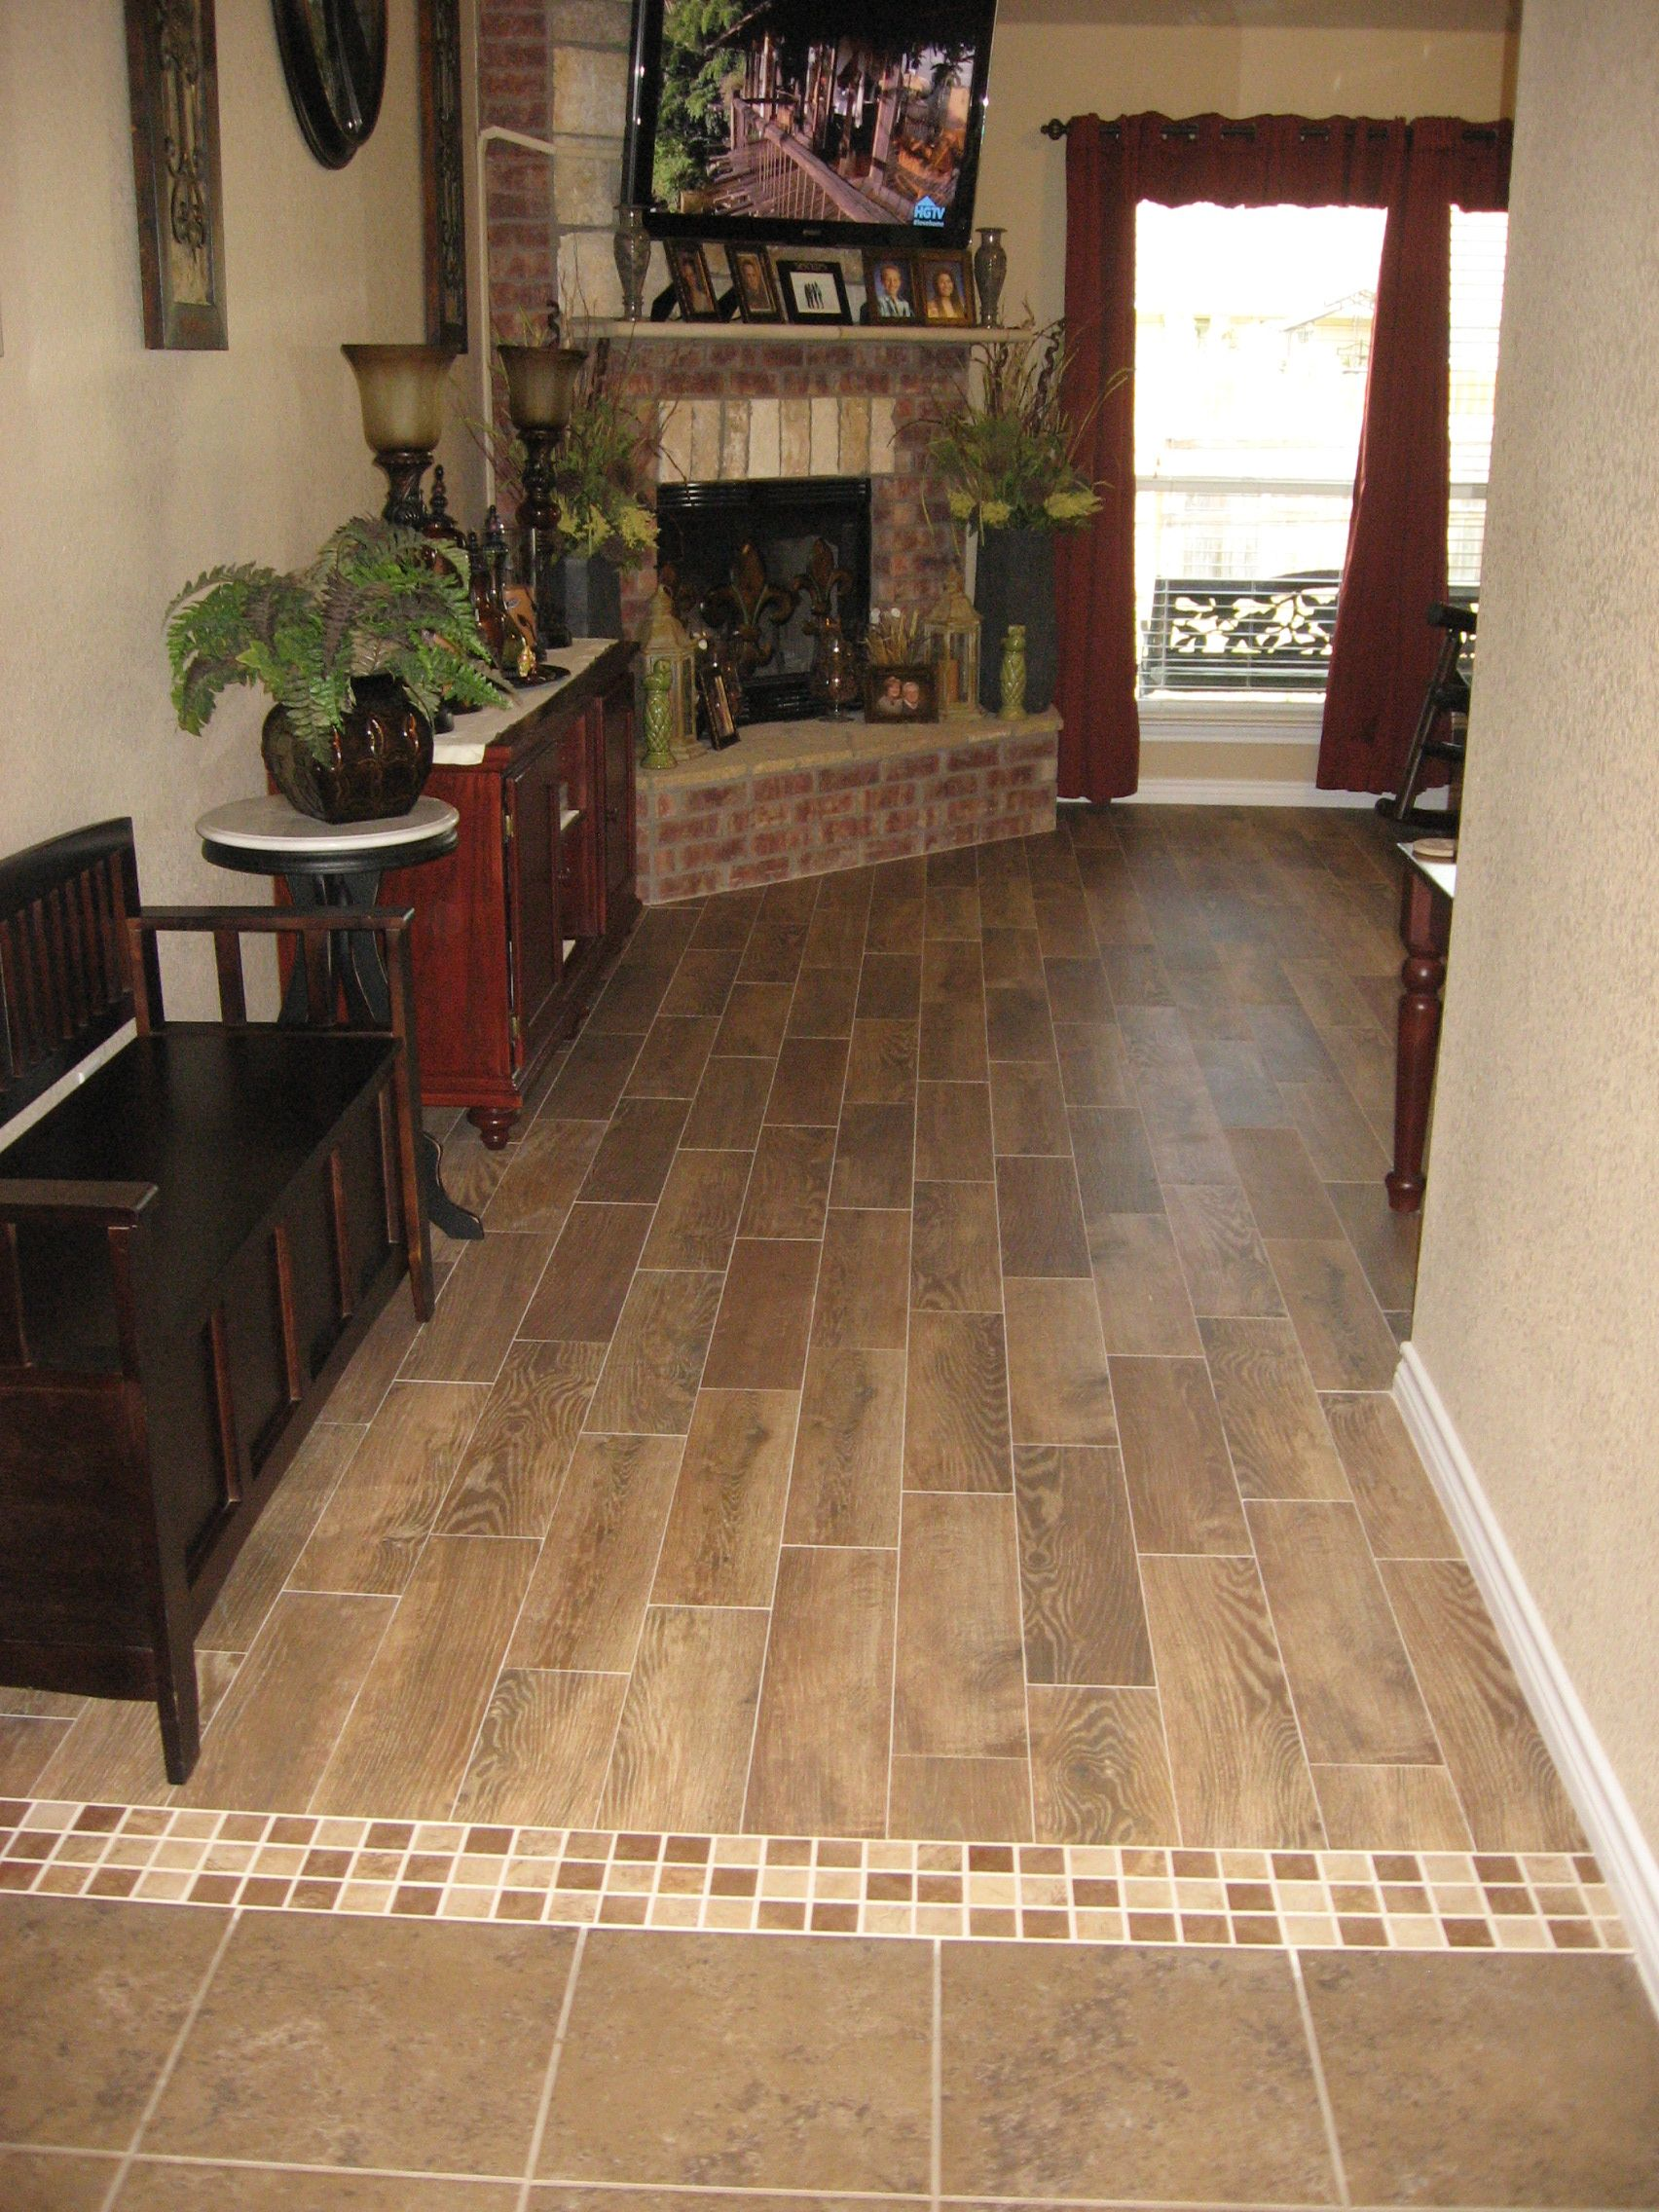 Tile Kitchen Floors Transition With Wood Plank Tile Floors Pinterest Mosaics